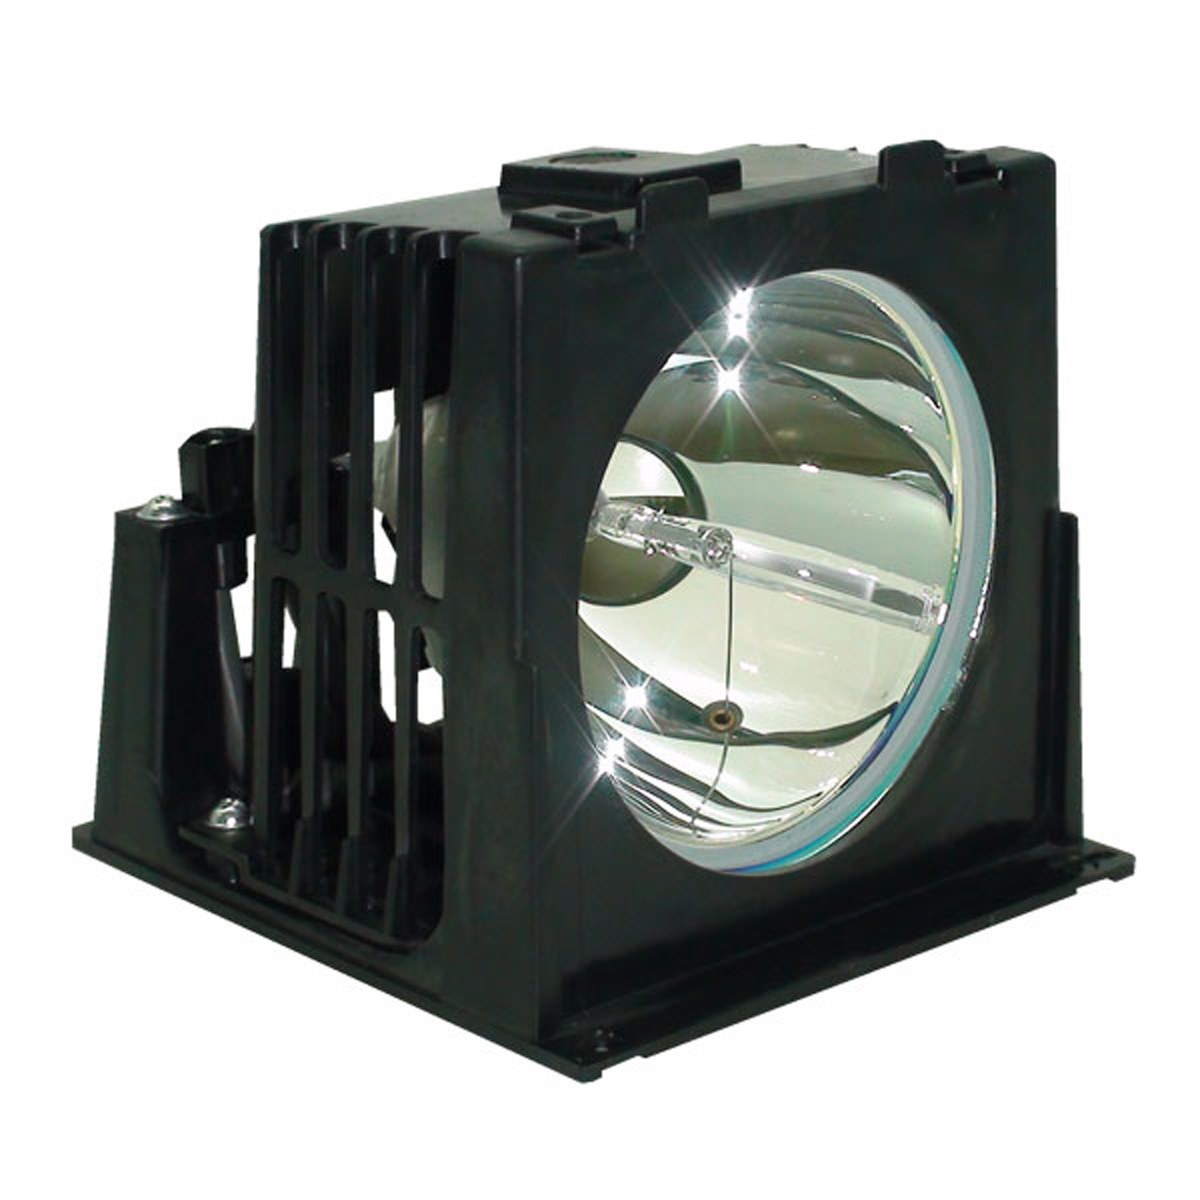 about mitsubishi 915p026010 915p026a10 dlp tv lamp bulb housing cage. Black Bedroom Furniture Sets. Home Design Ideas